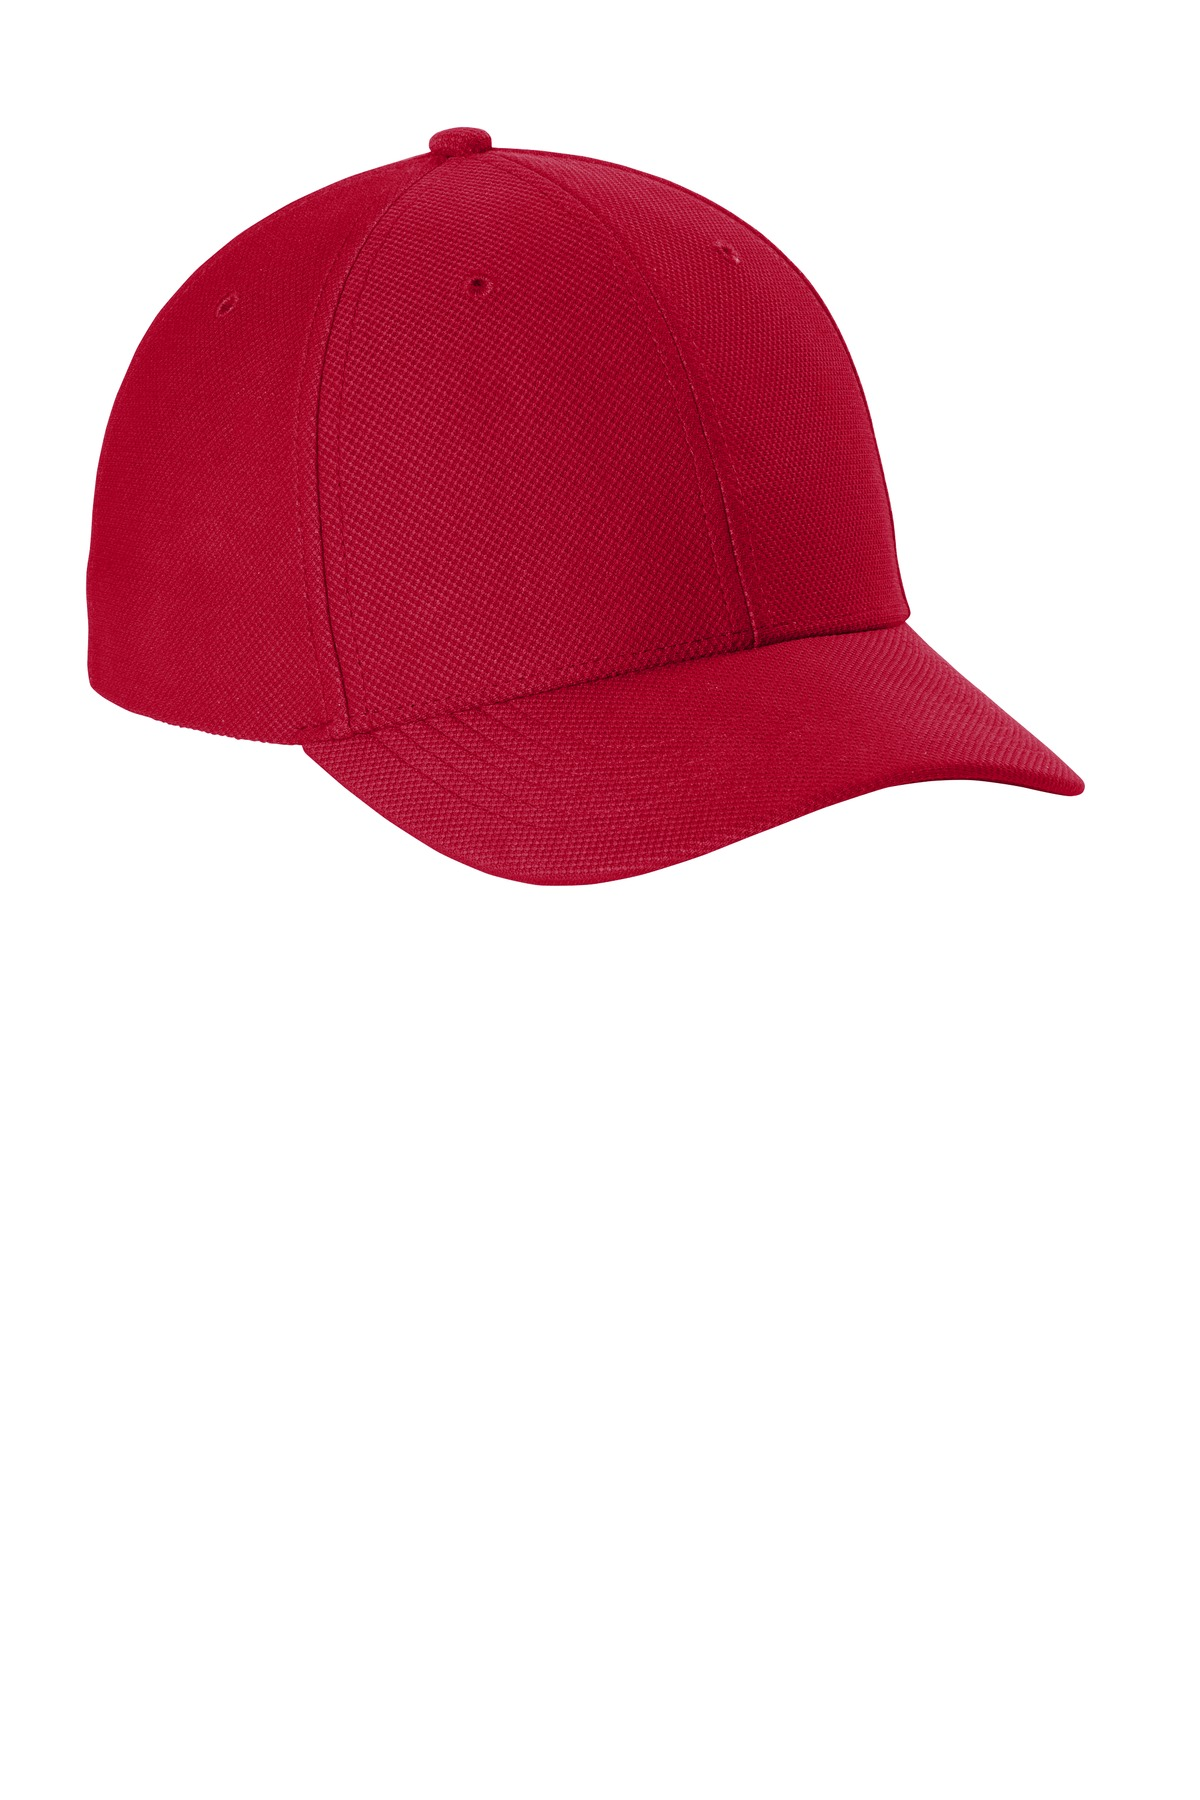 Sport-Tek  ®  Action Snapback Cap. STC50 - True Red